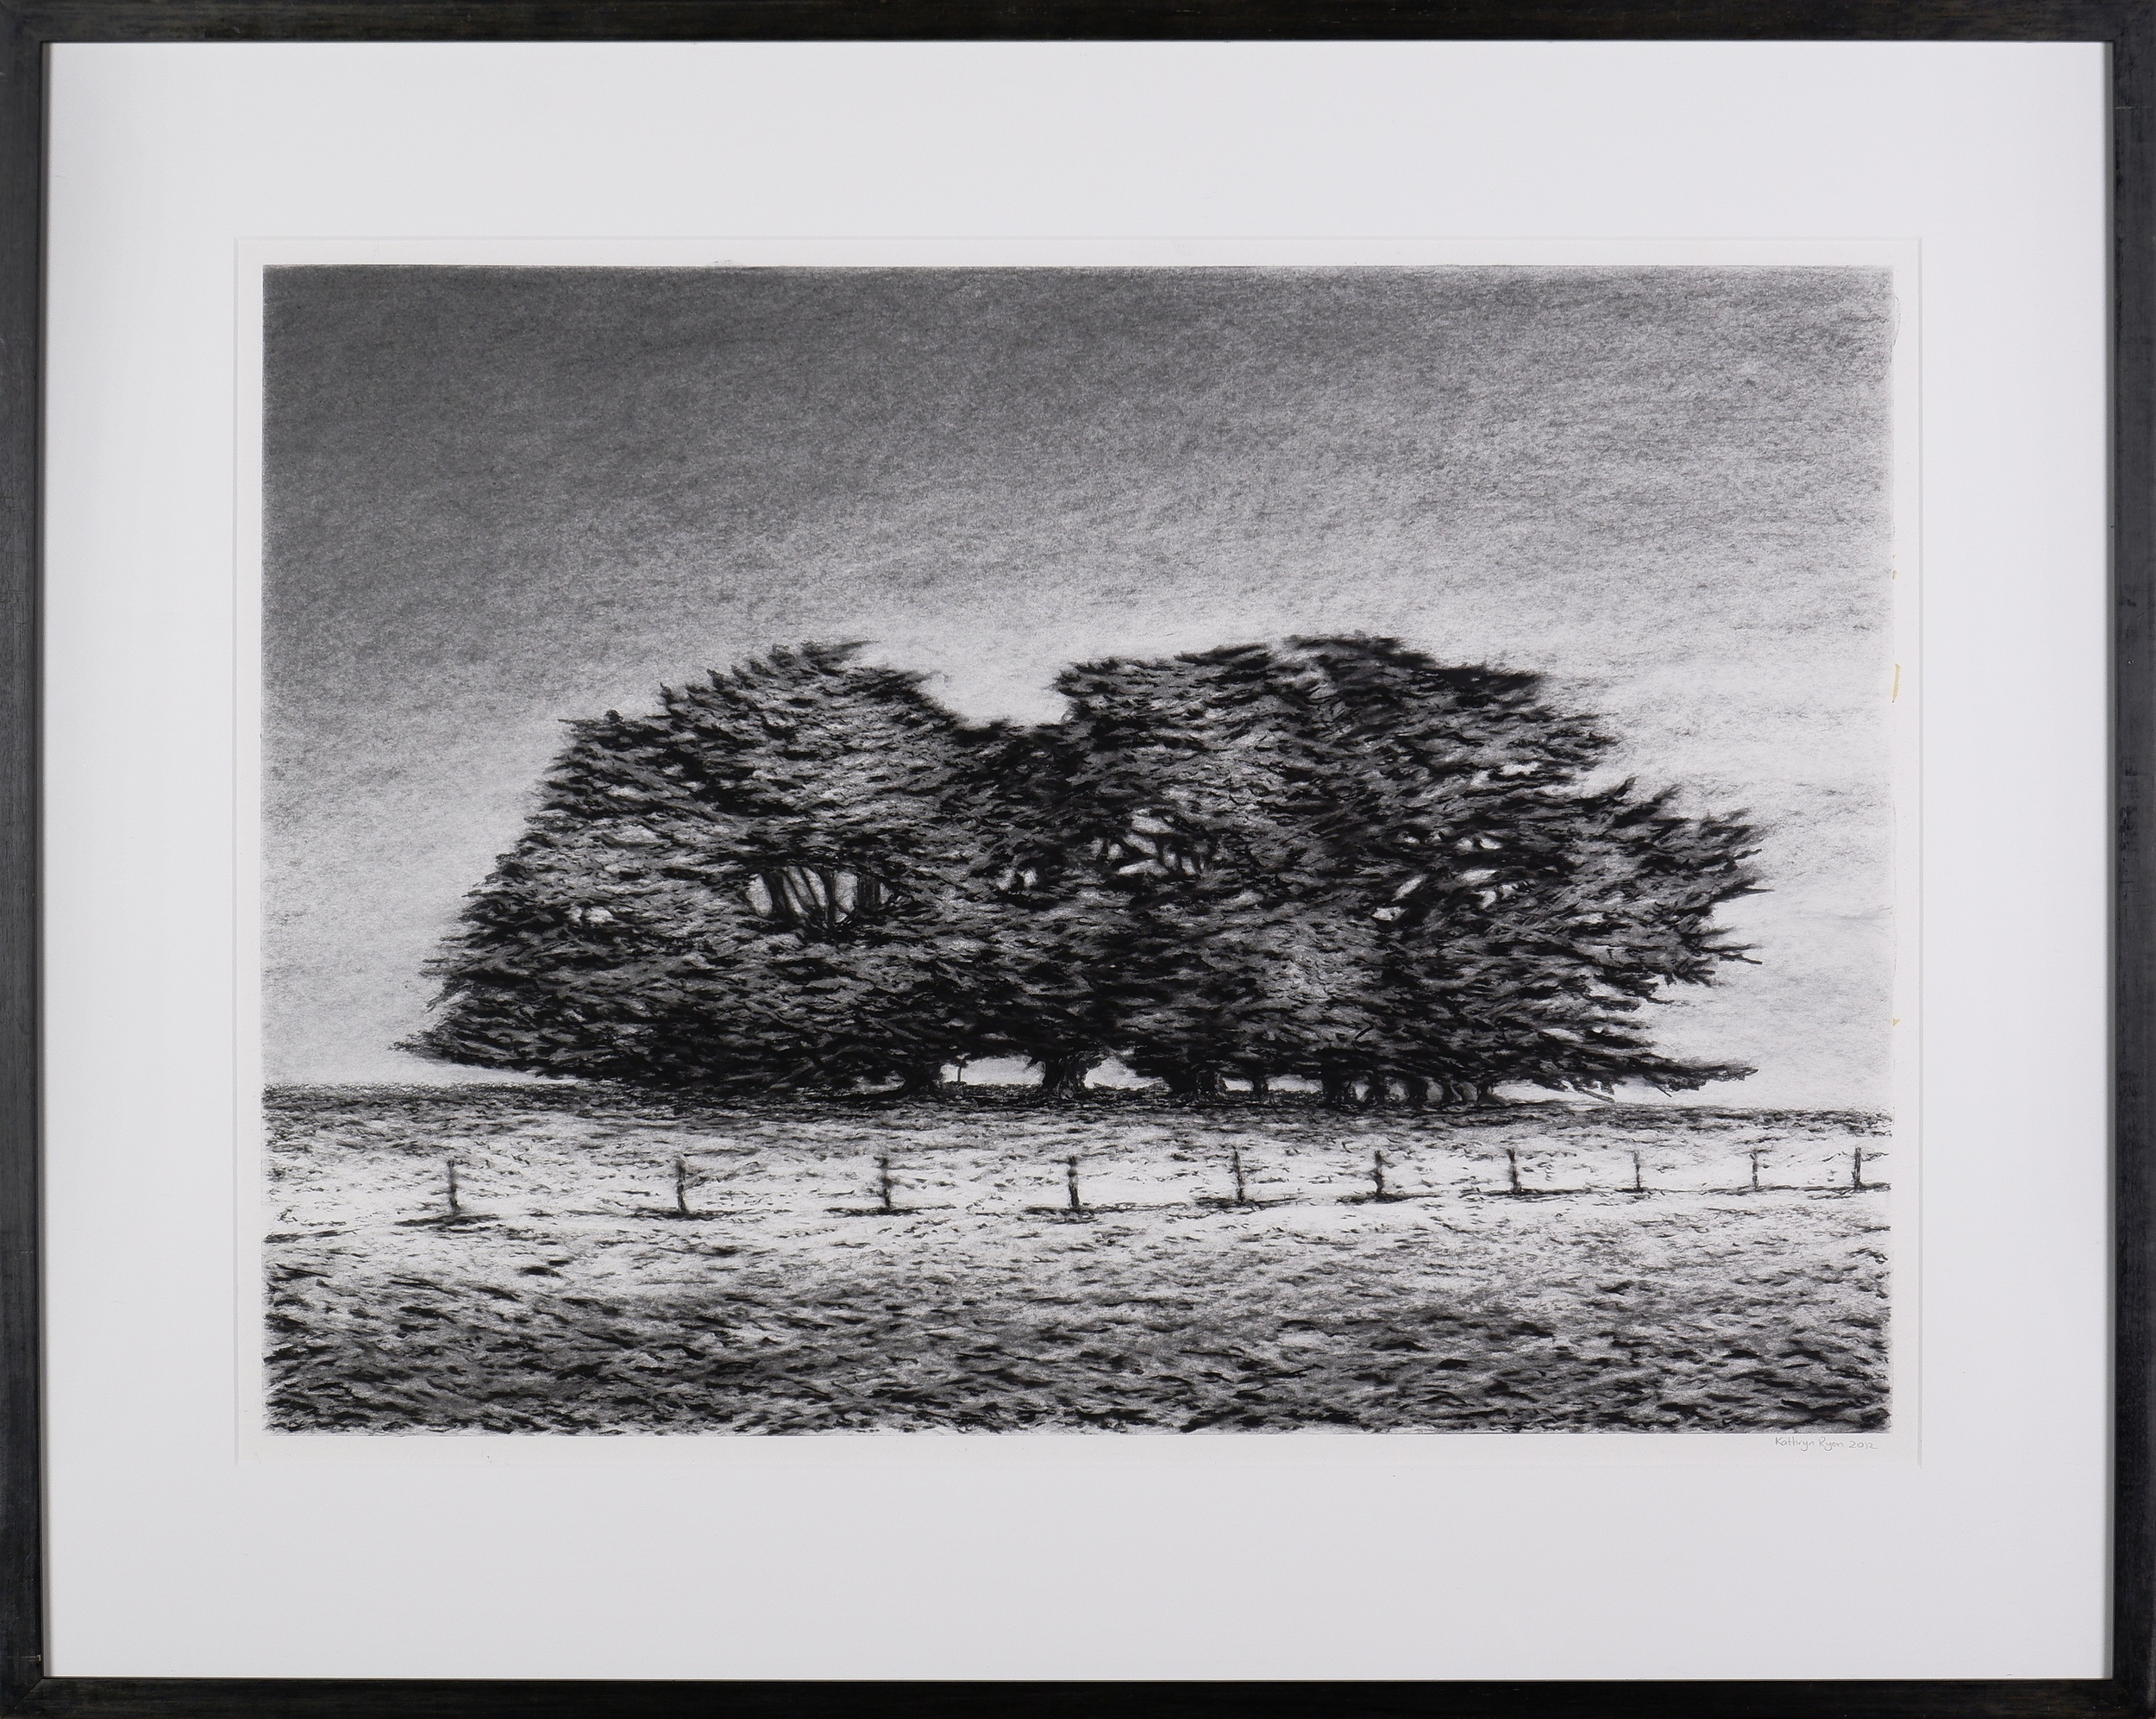 'Kathryn Ryan (born 1965), Cypress Cluster 2012, Charcoal on Paper'